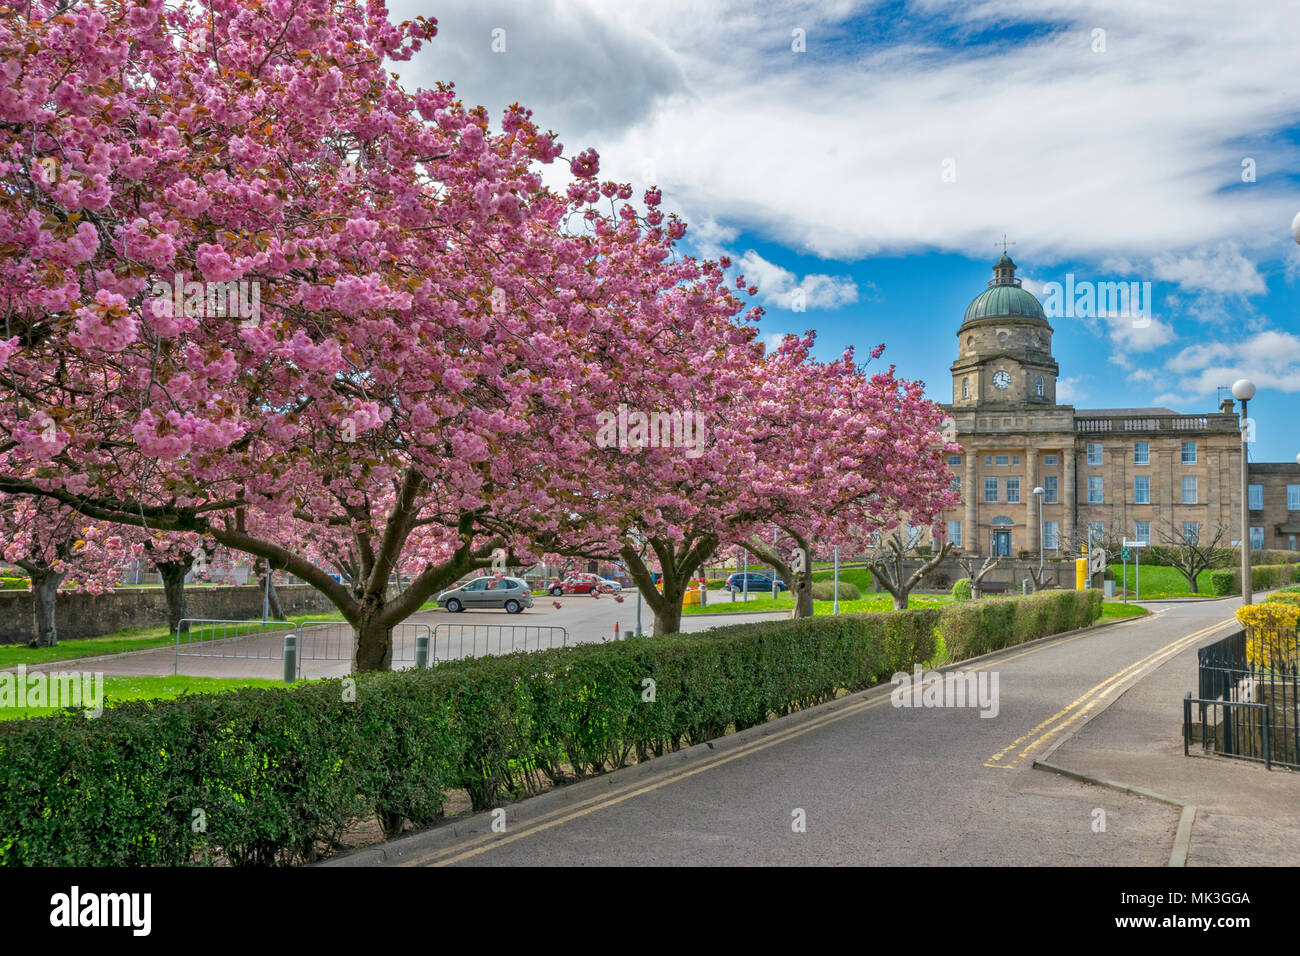 DR GRAYS HOSPITAL ELGIN MORAY SCOTLAND IN SPRING AVENUE OF PINK CHERRY TREE BLOSSOM - Stock Image